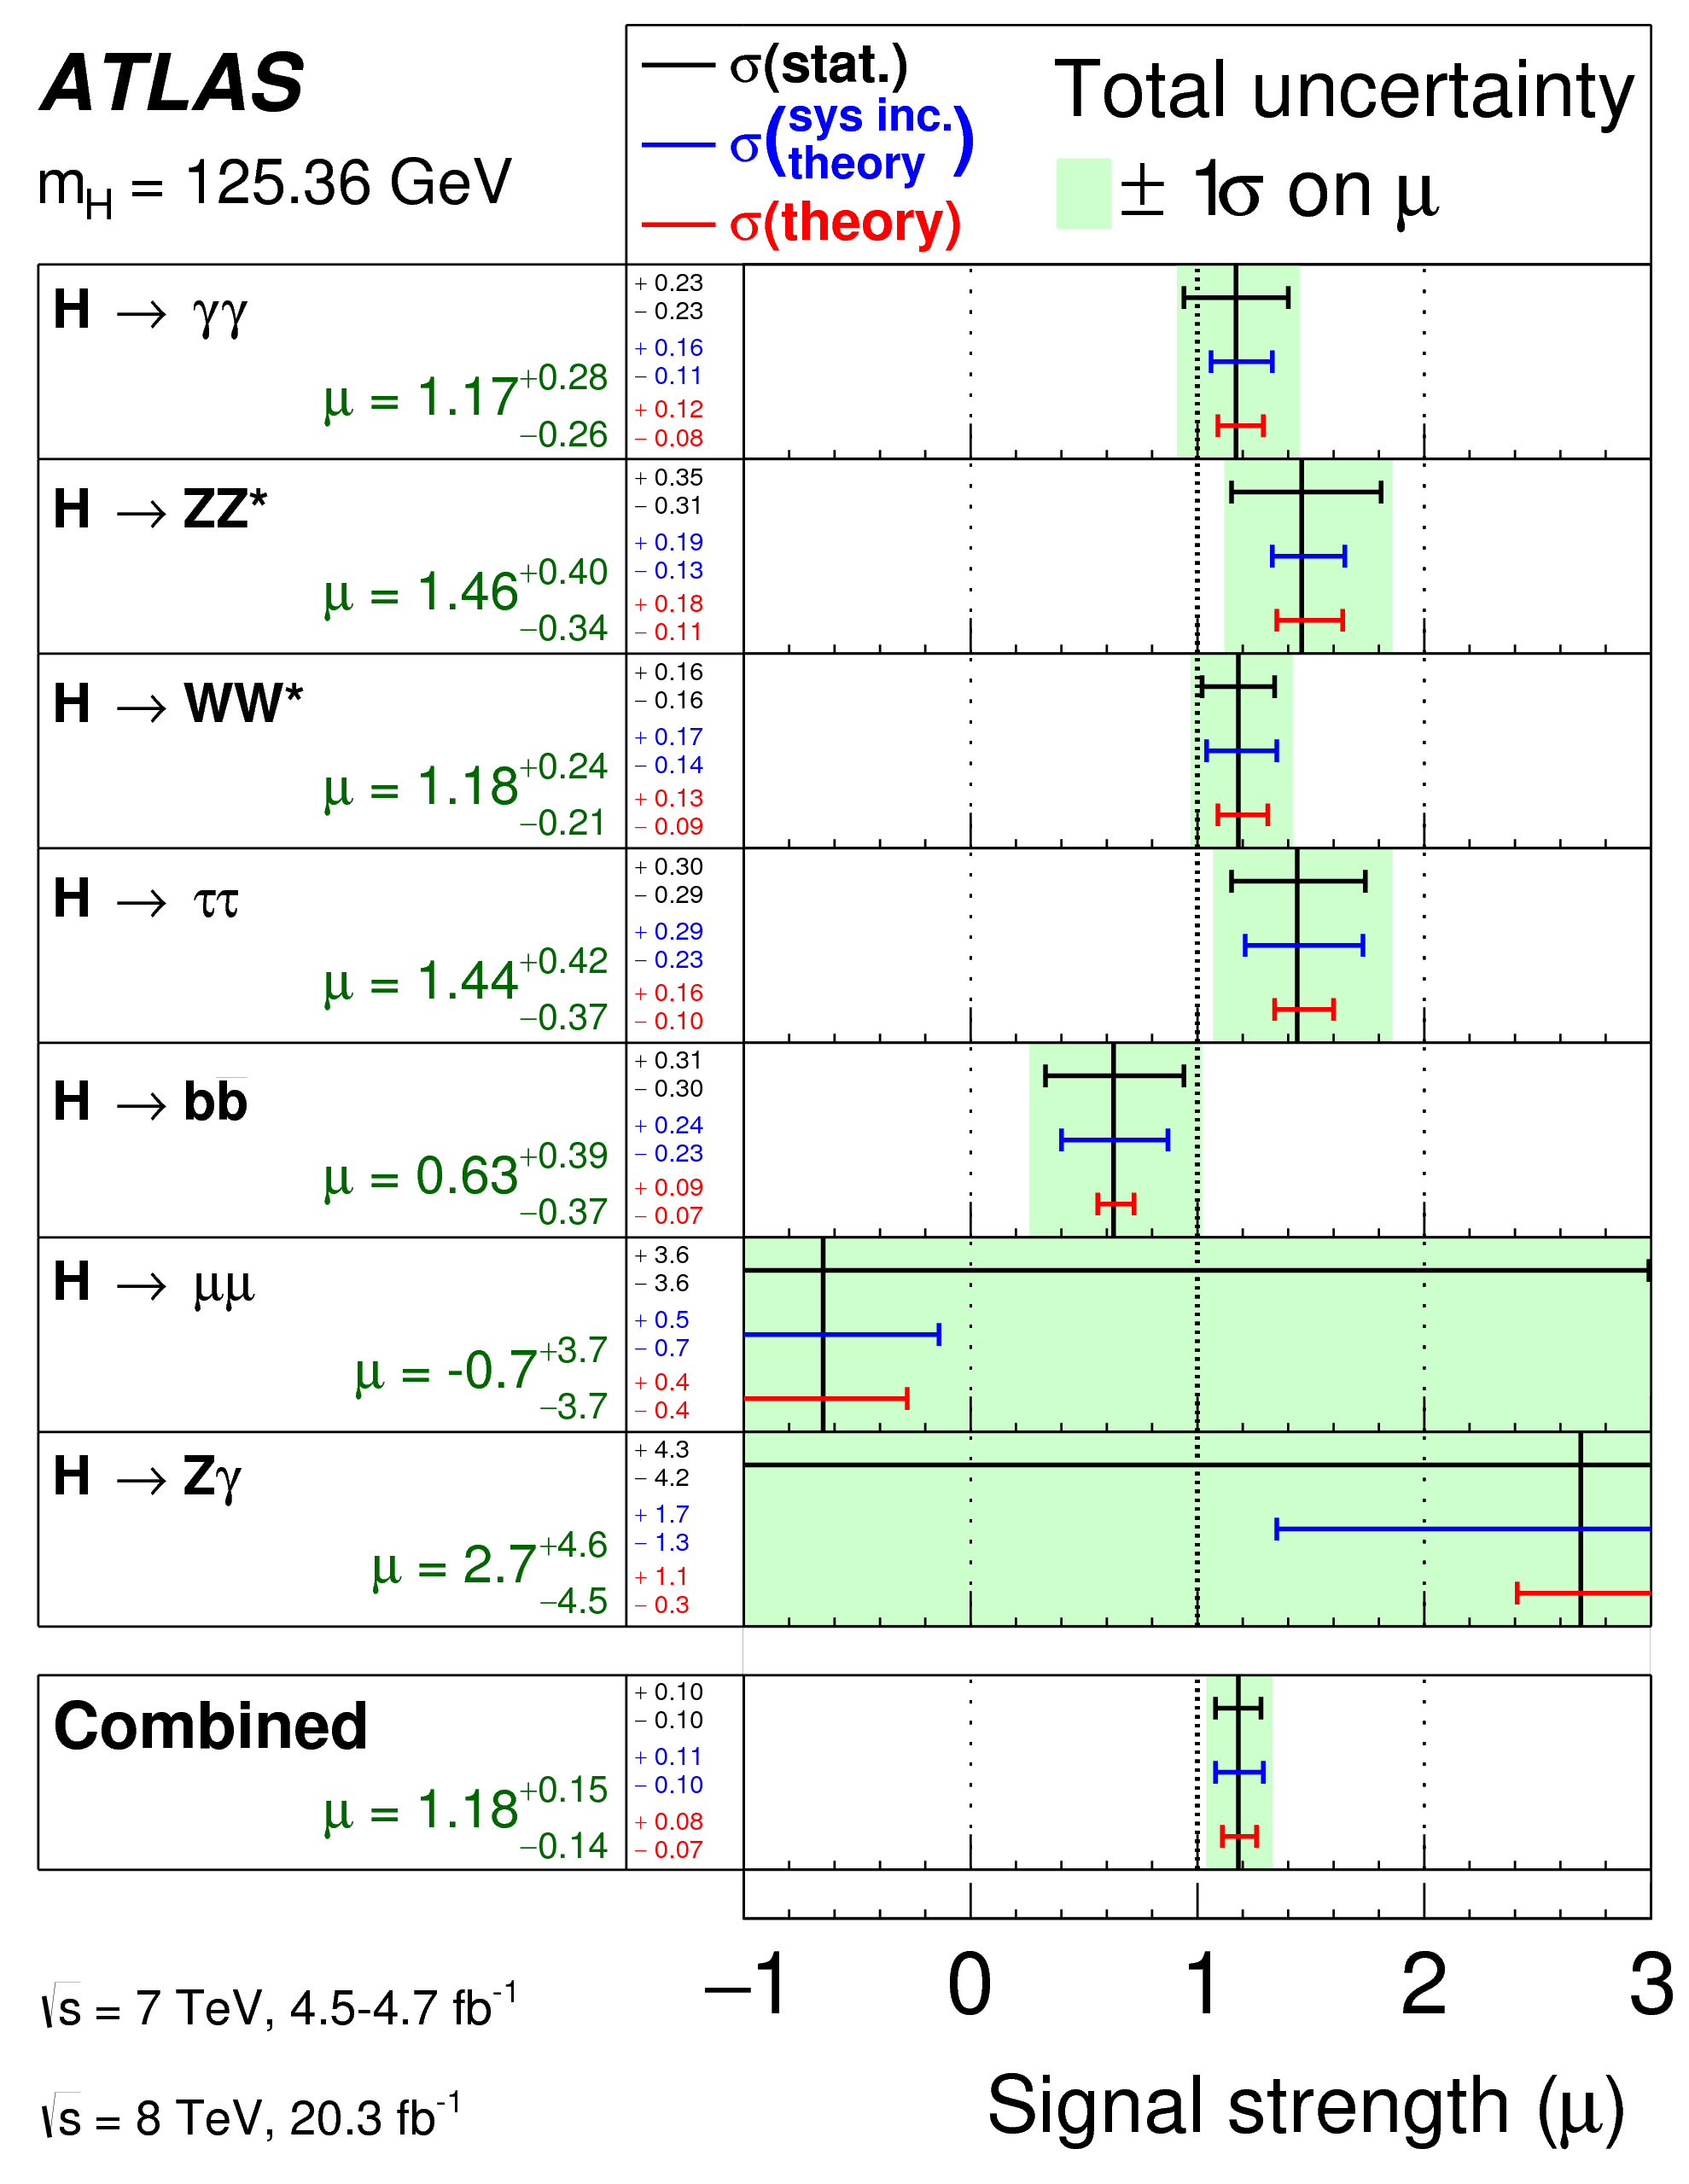 https://atlas.web.cern.ch/Atlas/GROUPS/PHYSICS/CombinedSummaryPlots/HIGGS/ATLAS_HIGGS3810_mu_Summary/ATLAS_HIGGS3810_mu_Summary.png